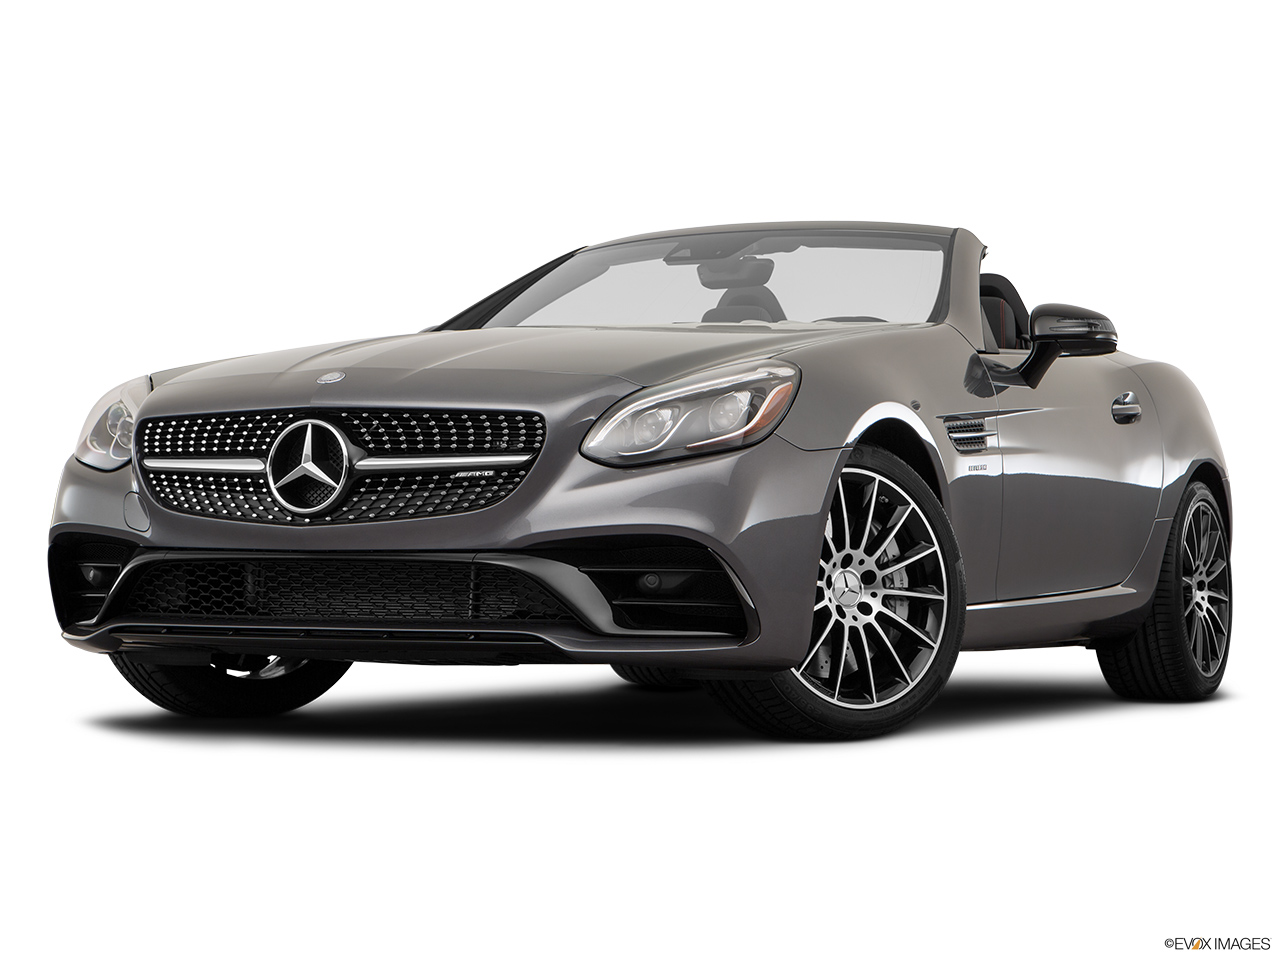 2019 Mercedes-Benz SLC-class SLC43 AMG Front angle view, low wide perspective.